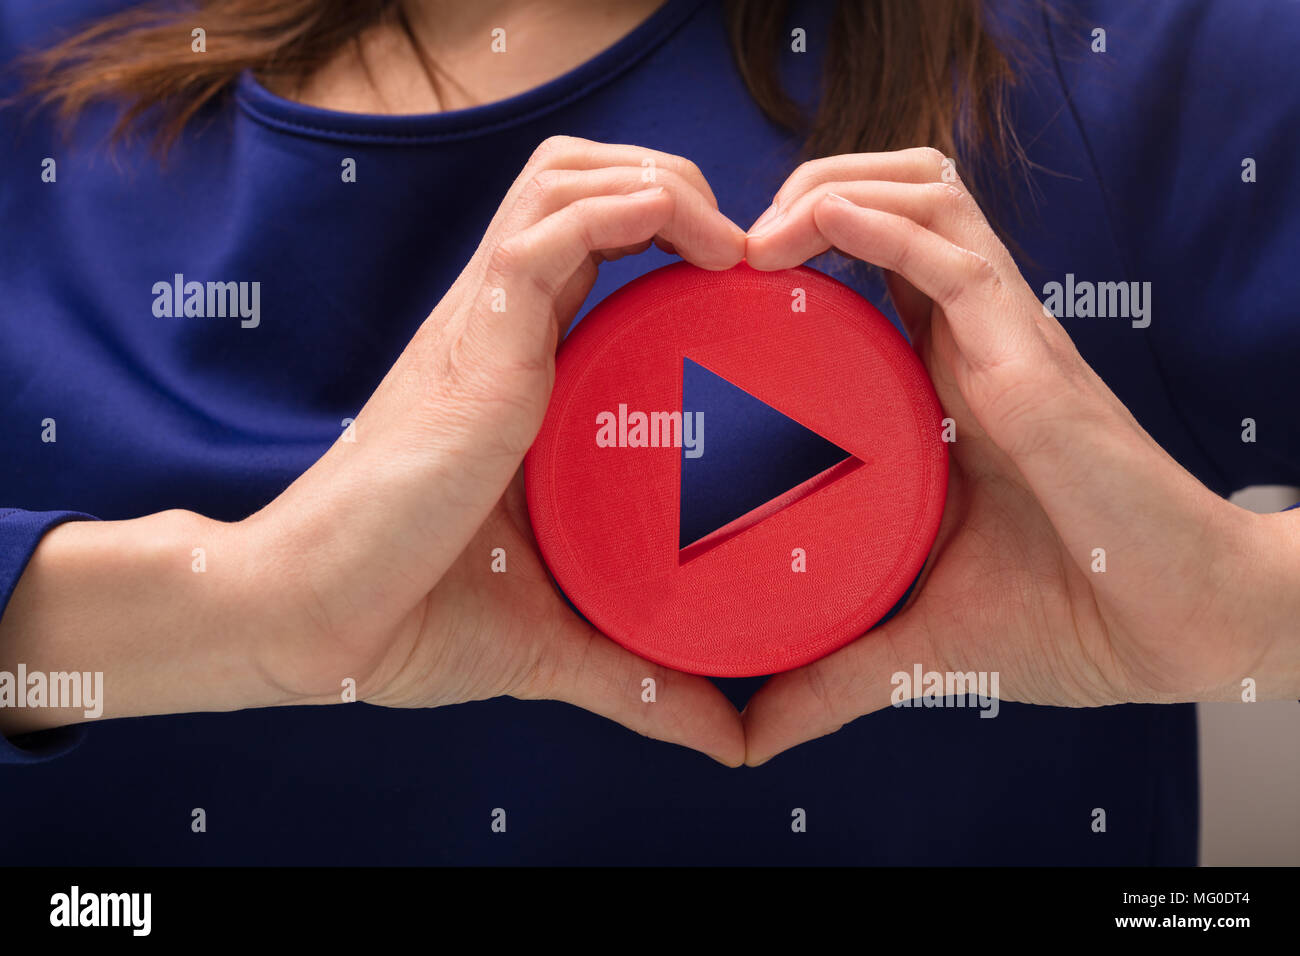 Woman's Hand Making Heart Shape With Her Hand Holding Play Icon Stock Photo